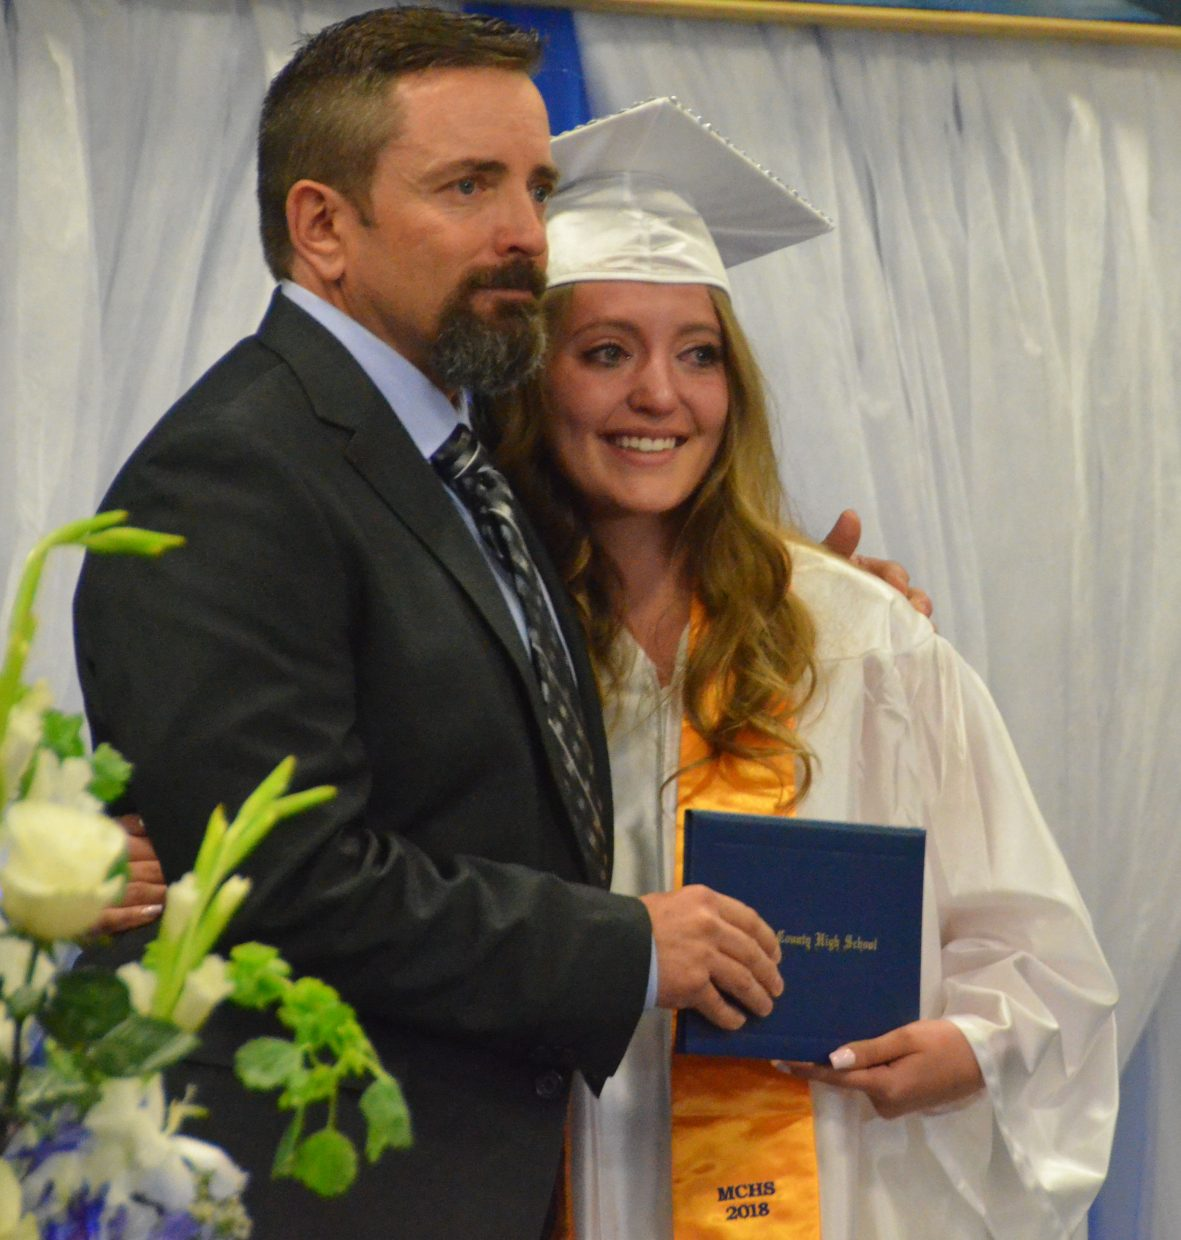 Moffat County High School's Kinleigh McIntyre gets emotional after receiving her diploma during Saturday's graduation ceremony.